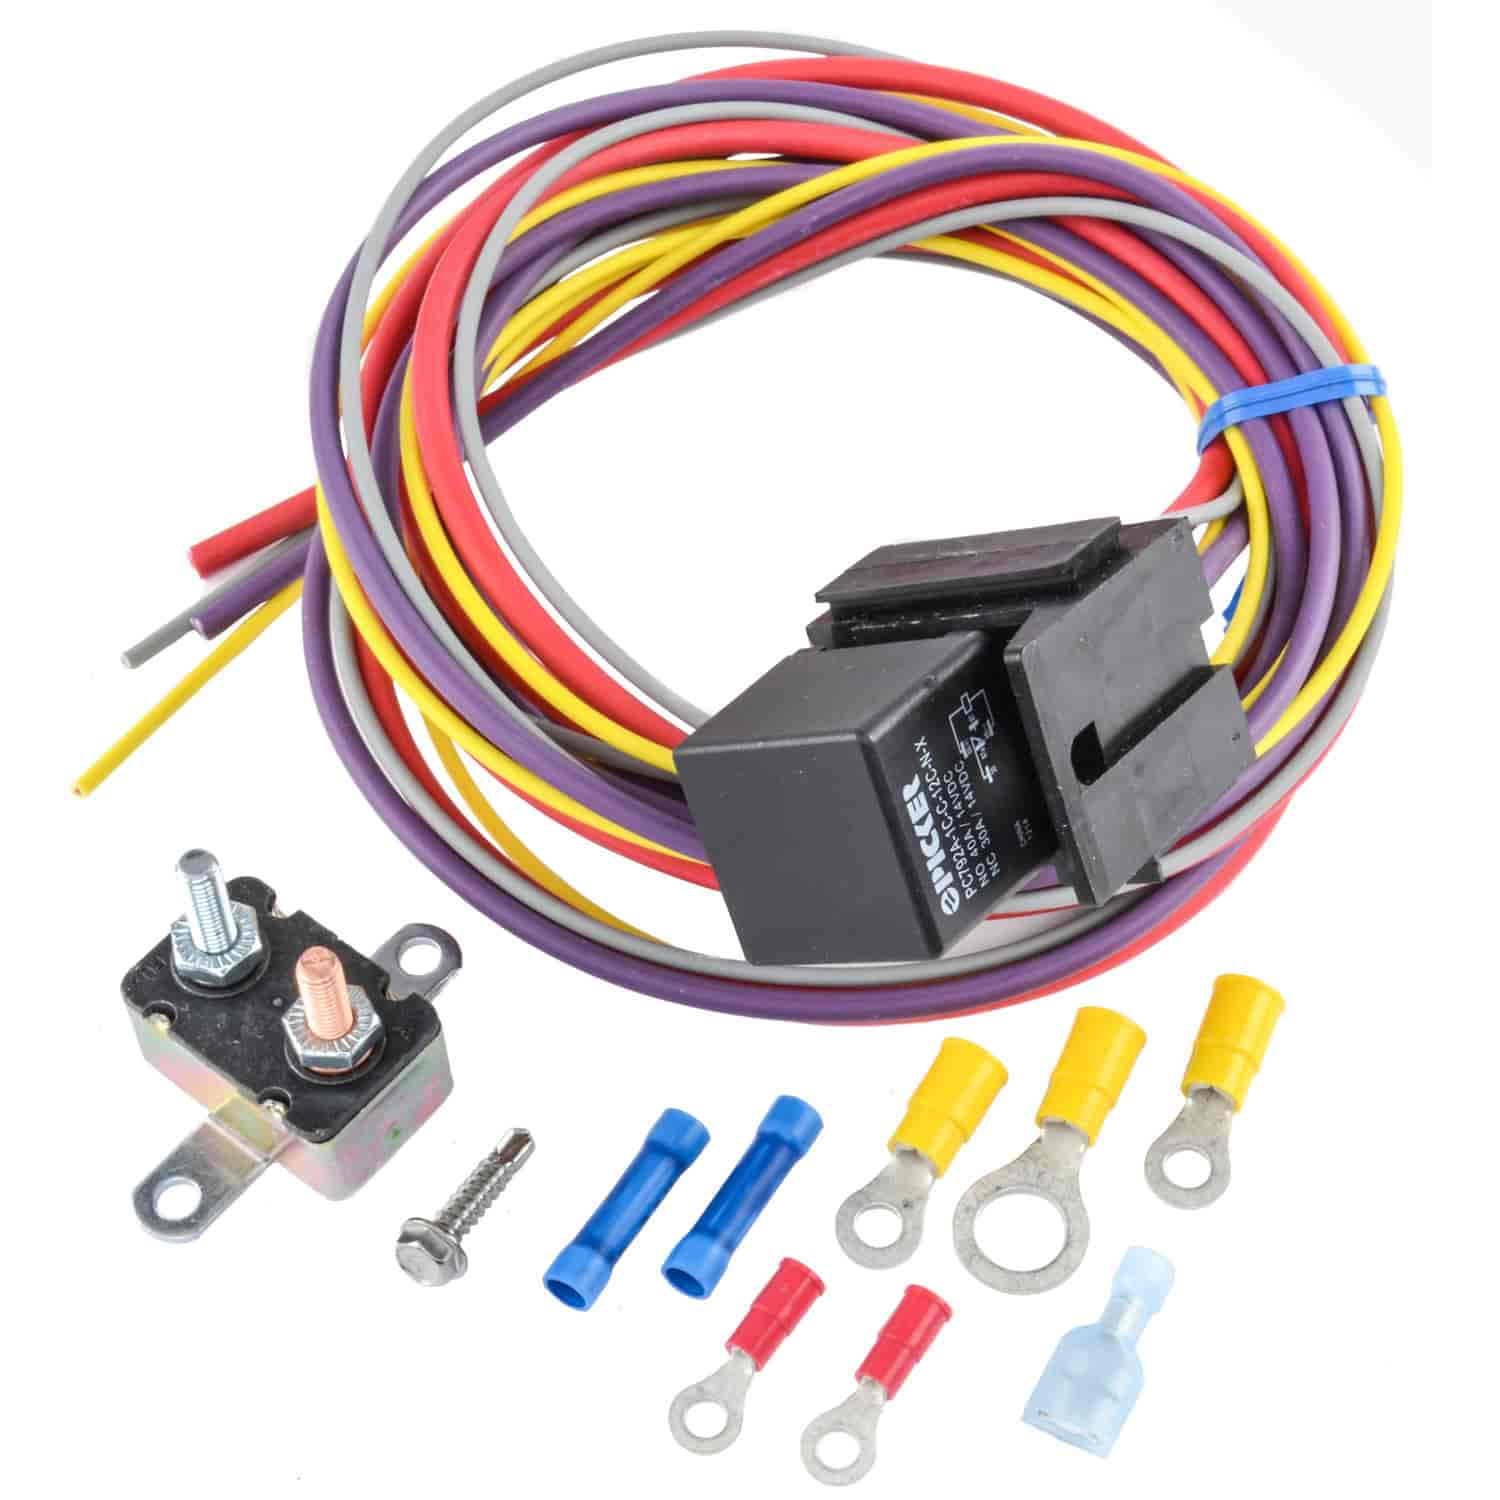 555 10559 jegs performance products 10559 manual controlled single fan jegs universal wiring harness at edmiracle.co